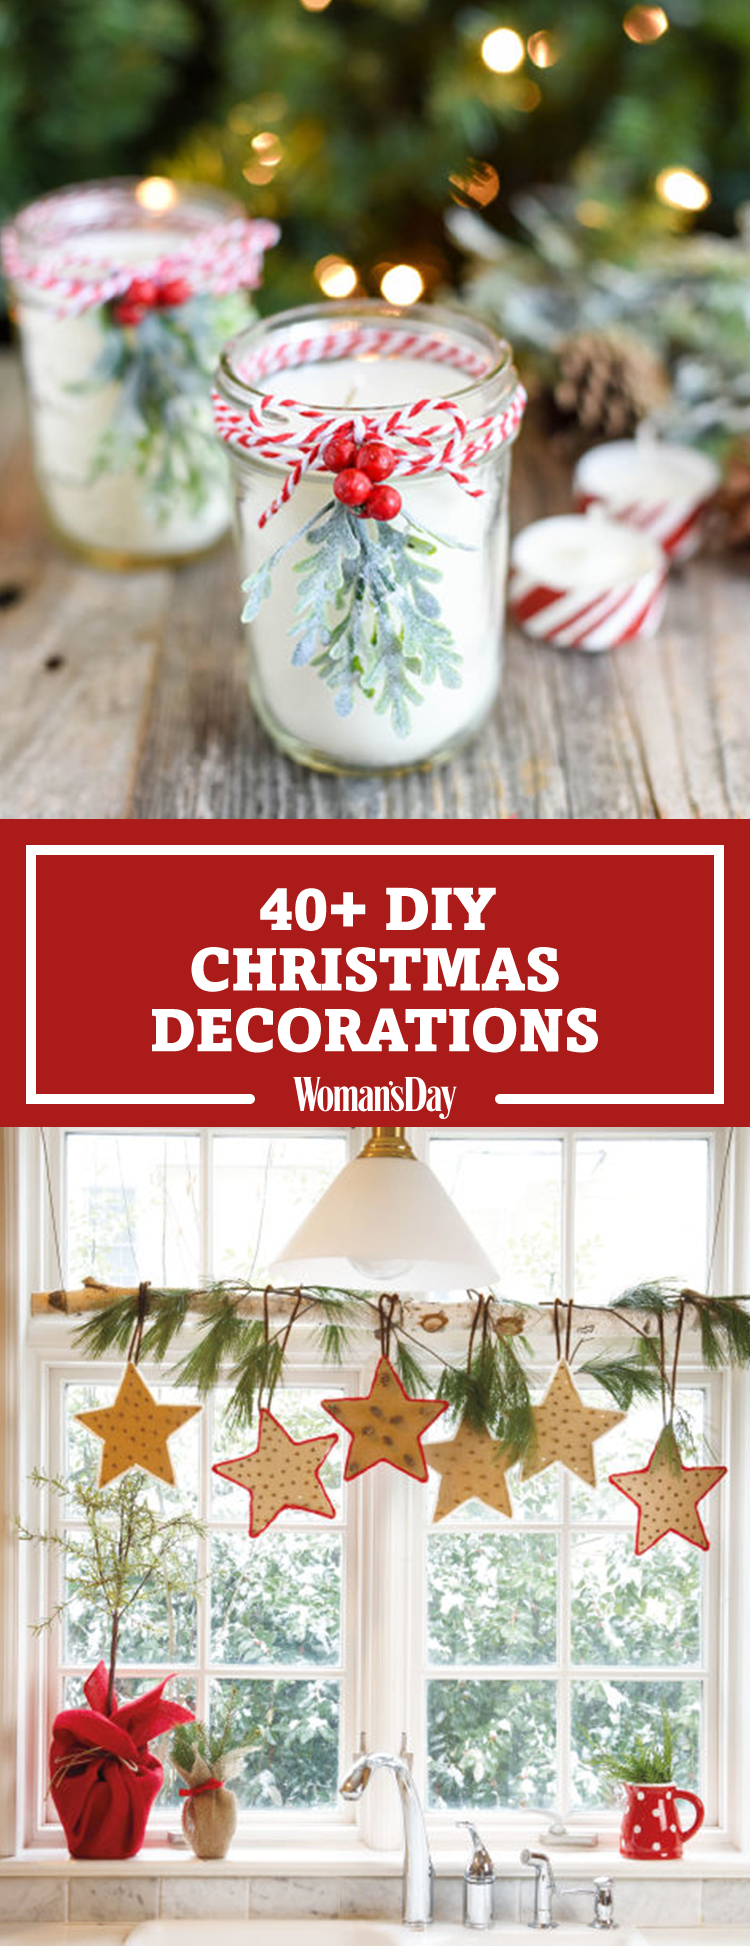 Permalink to 47 Easy DIY Christmas Decorations  Homemade Ideas for Holiday Decorating